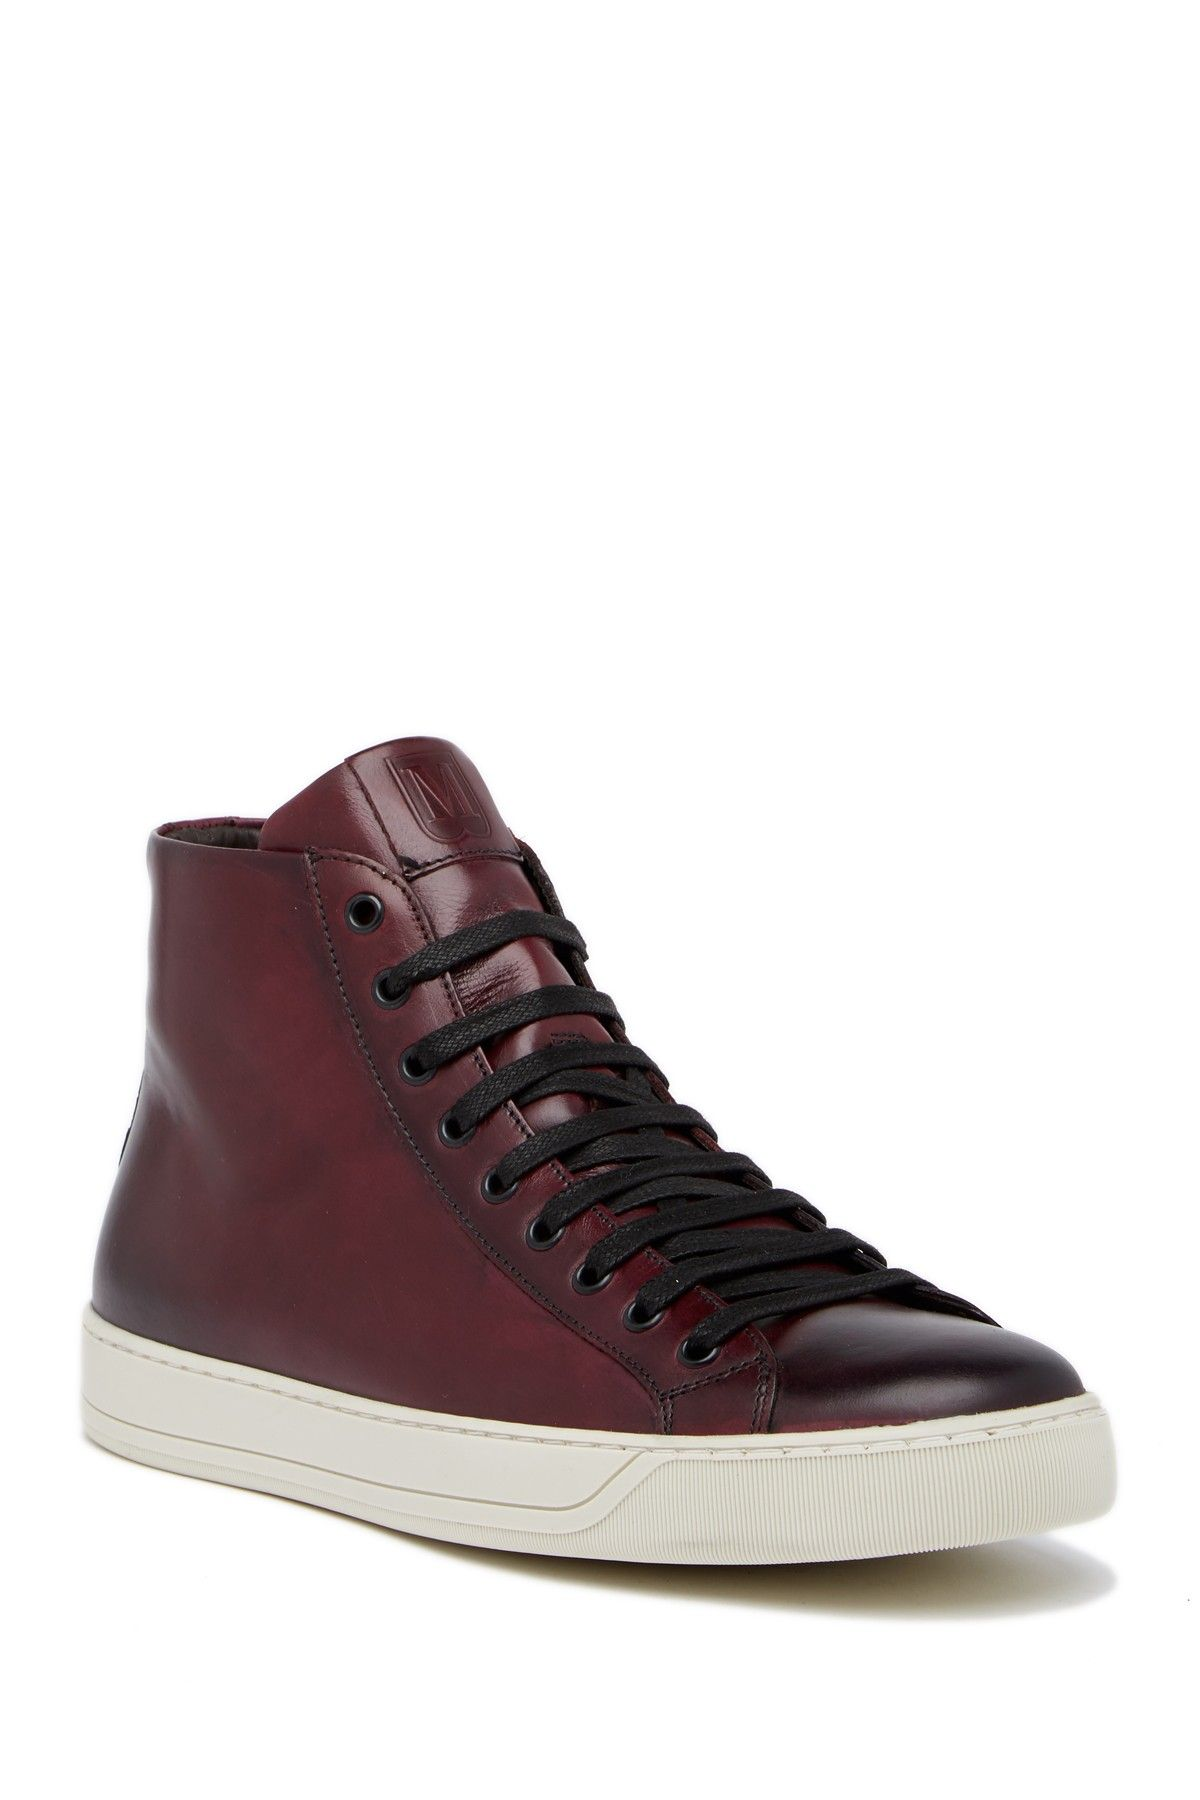 fbc6299d2f6 Wilson Leather Hi-Top Sneaker